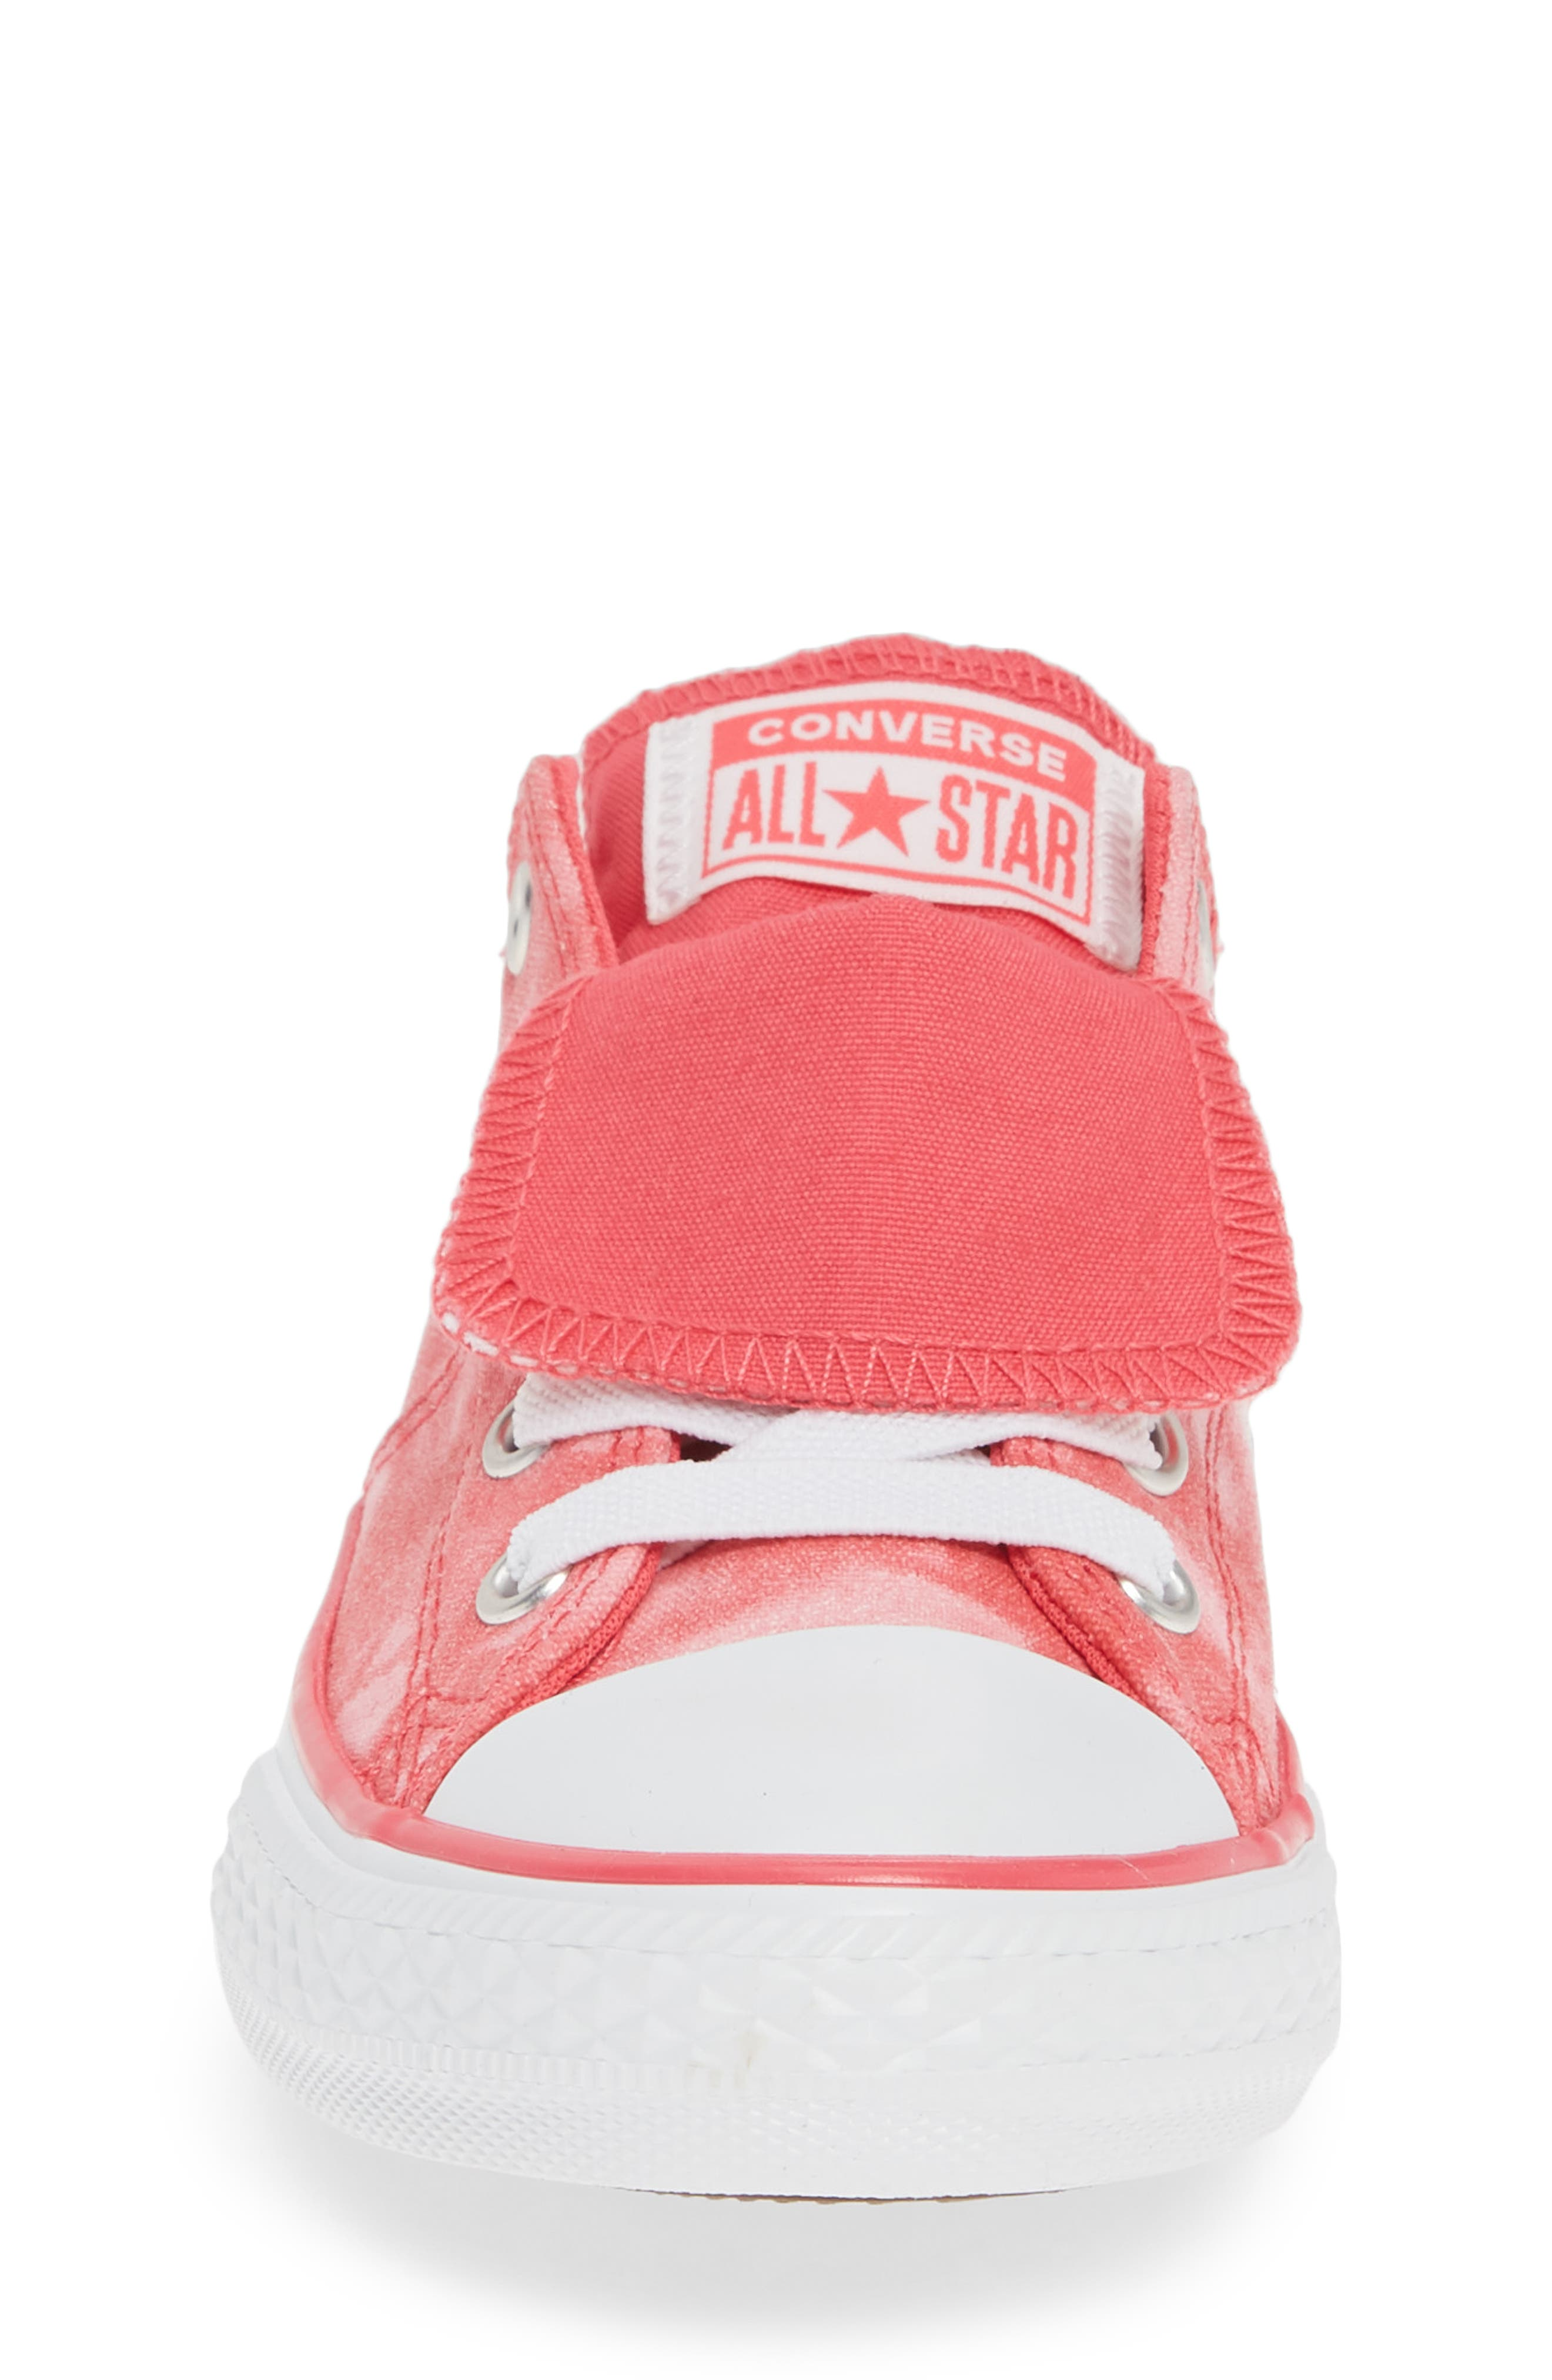 ,                             Chuck Taylor<sup>®</sup> All Star<sup>®</sup> Maddie Double Tongue Sneaker,                             Alternate thumbnail 40, color,                             662